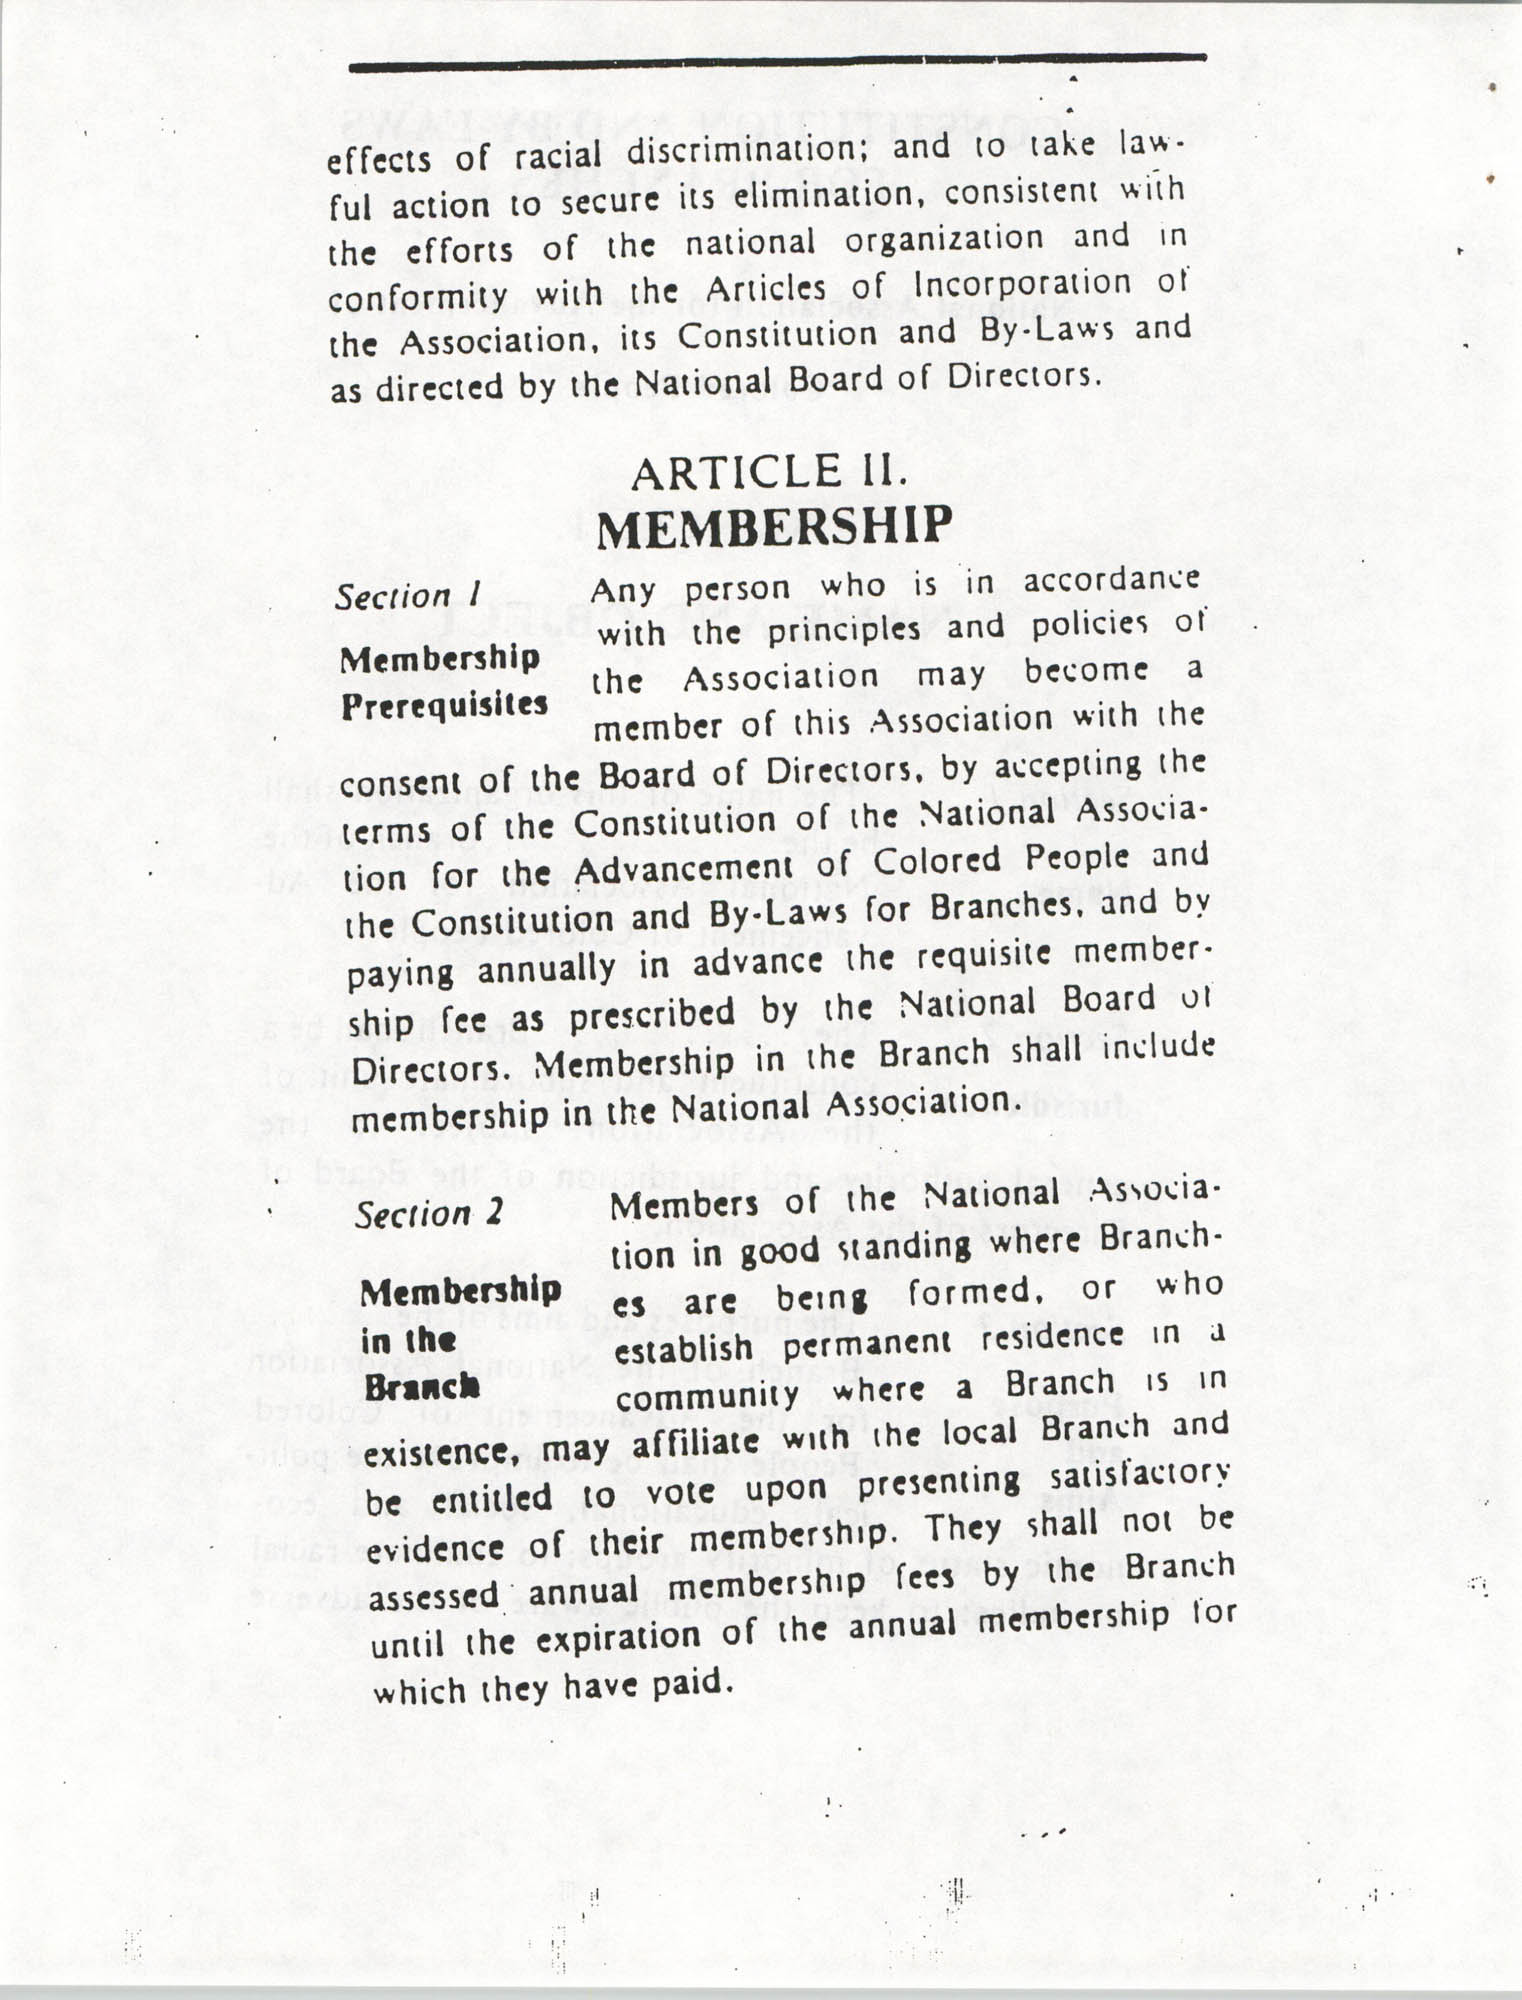 Constitution and By-Laws for Branches of the NAACP, March 1992, Page 4